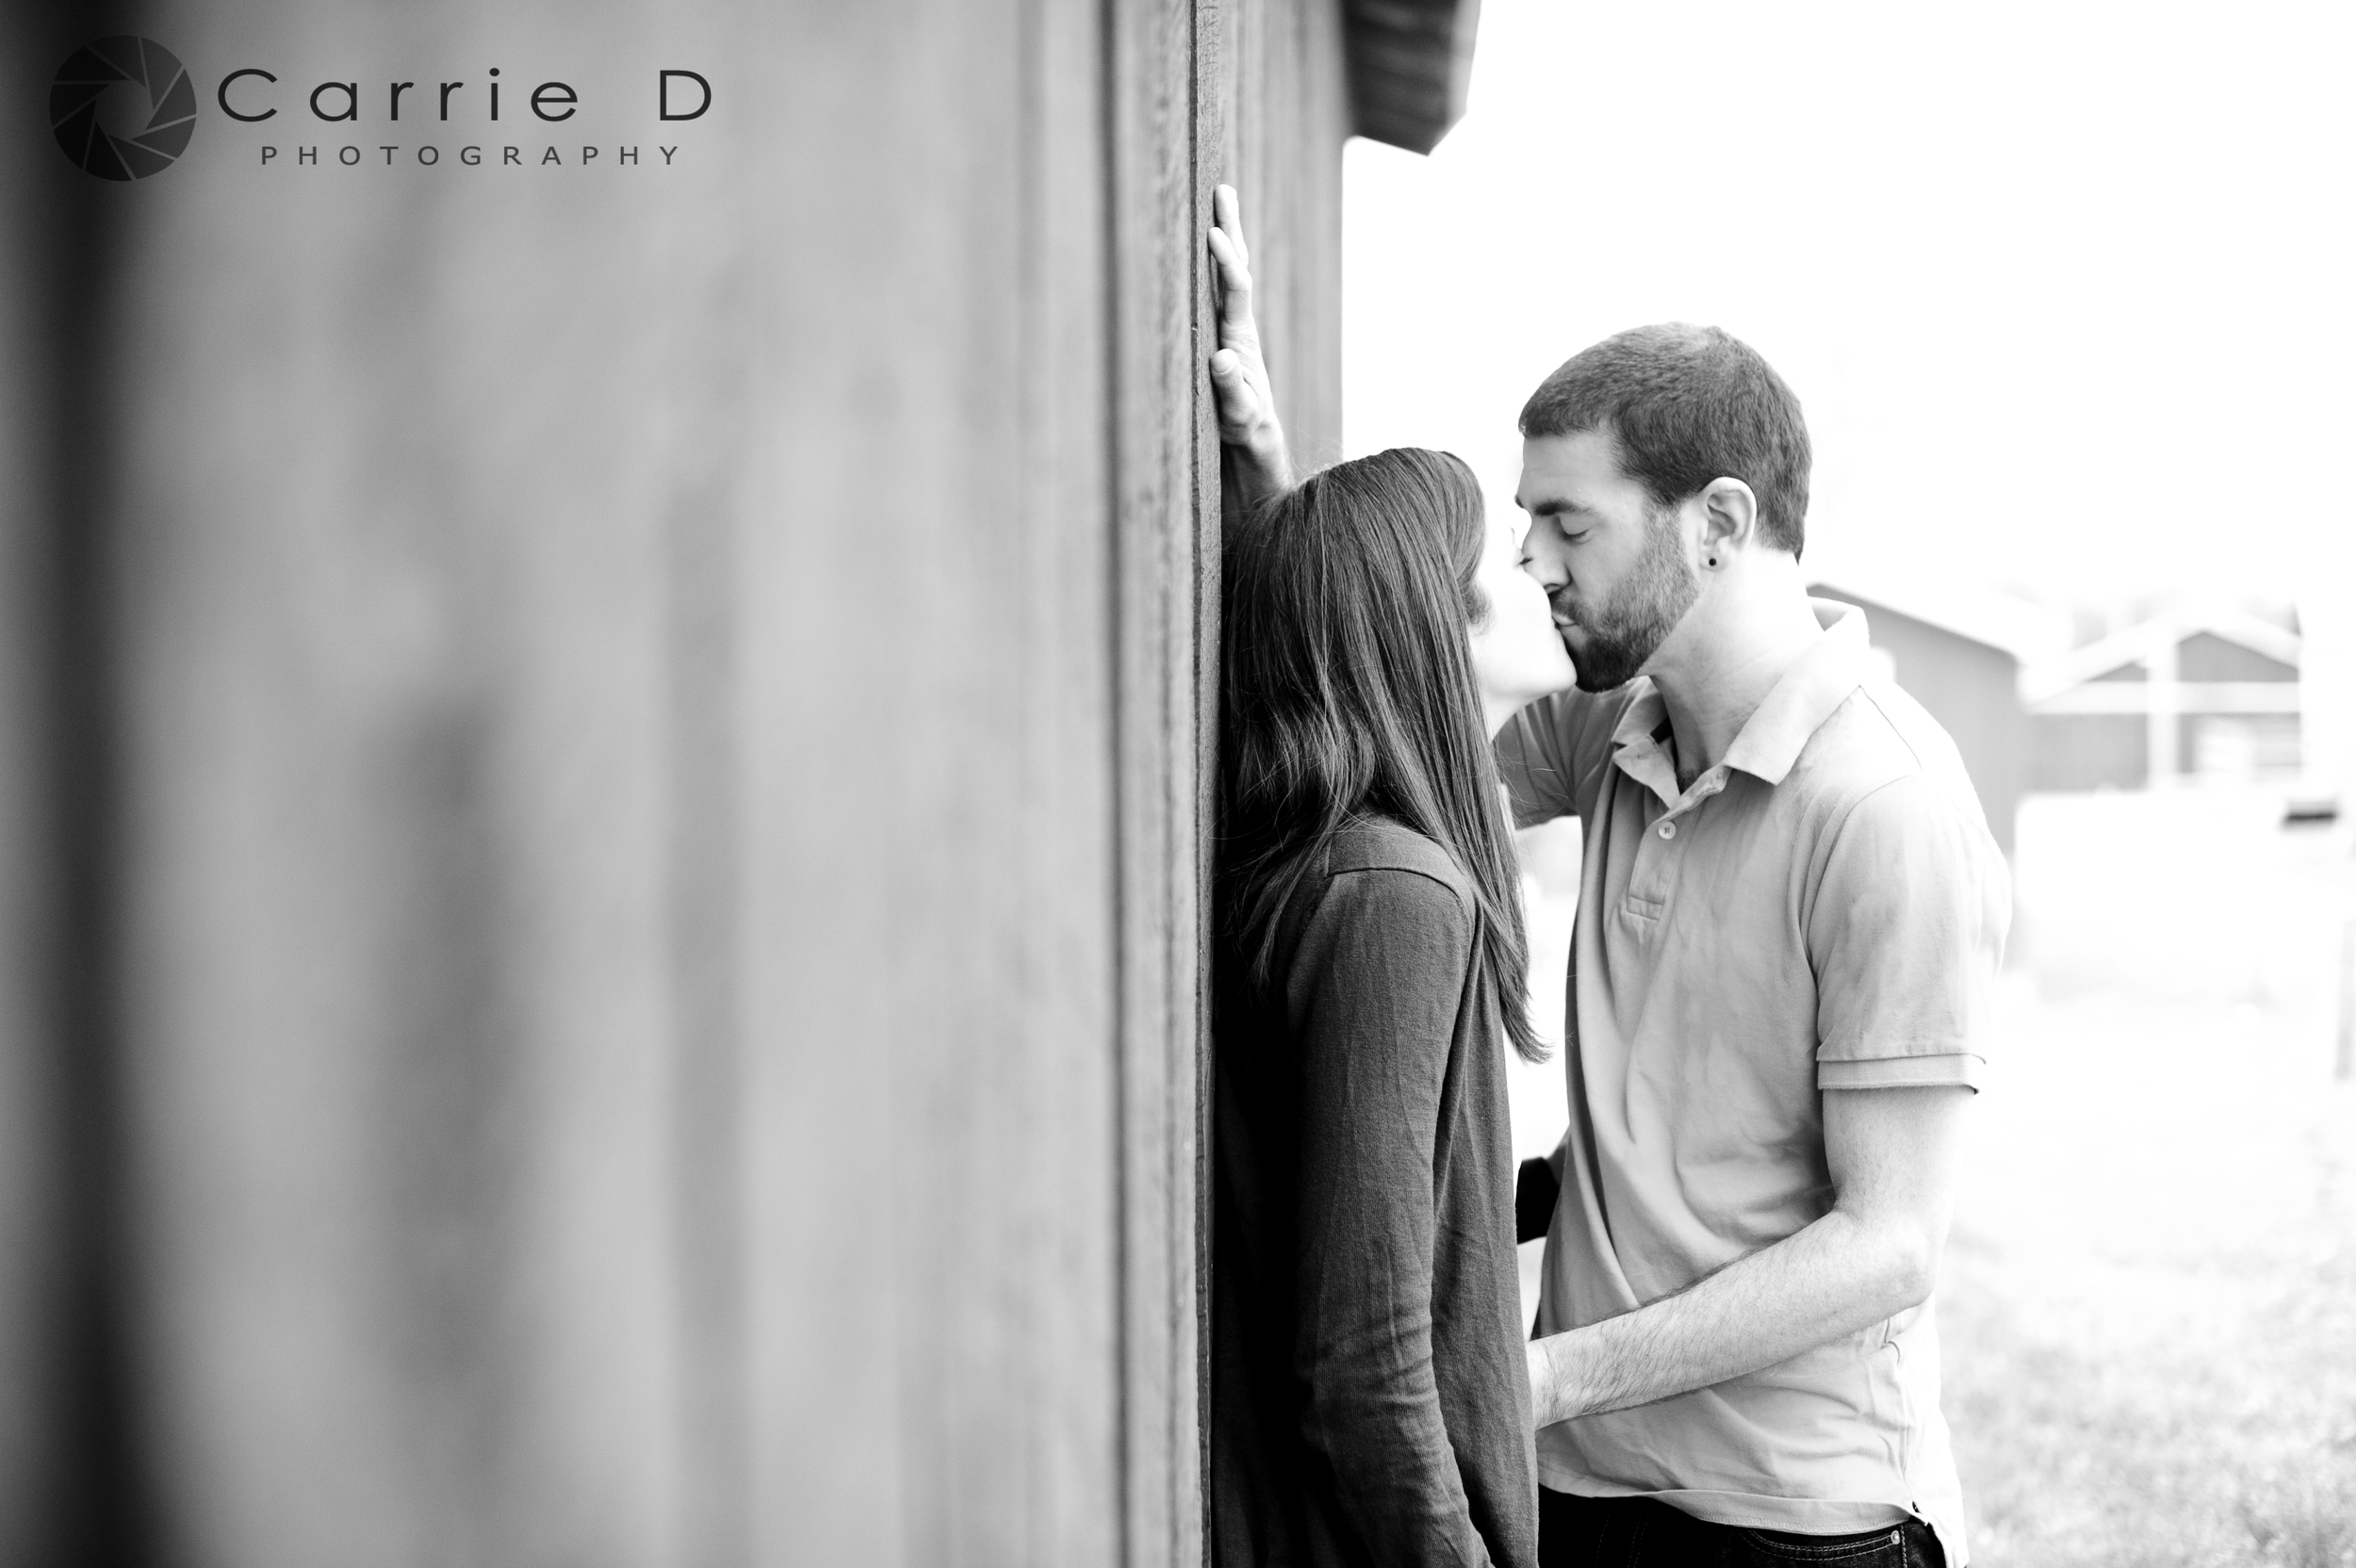 Annapolis Engagement Photographer - Annapolis Natural Light Engagement Photographer - Maryland Engagement Photographer - Maryland Natural Light Engagement photographer - Annapolis Wedding Photographer - Annapolis Natural Light Wedding Photographer - Maryland Wedding Photographer - Maryland Natural Light Wedding photographer